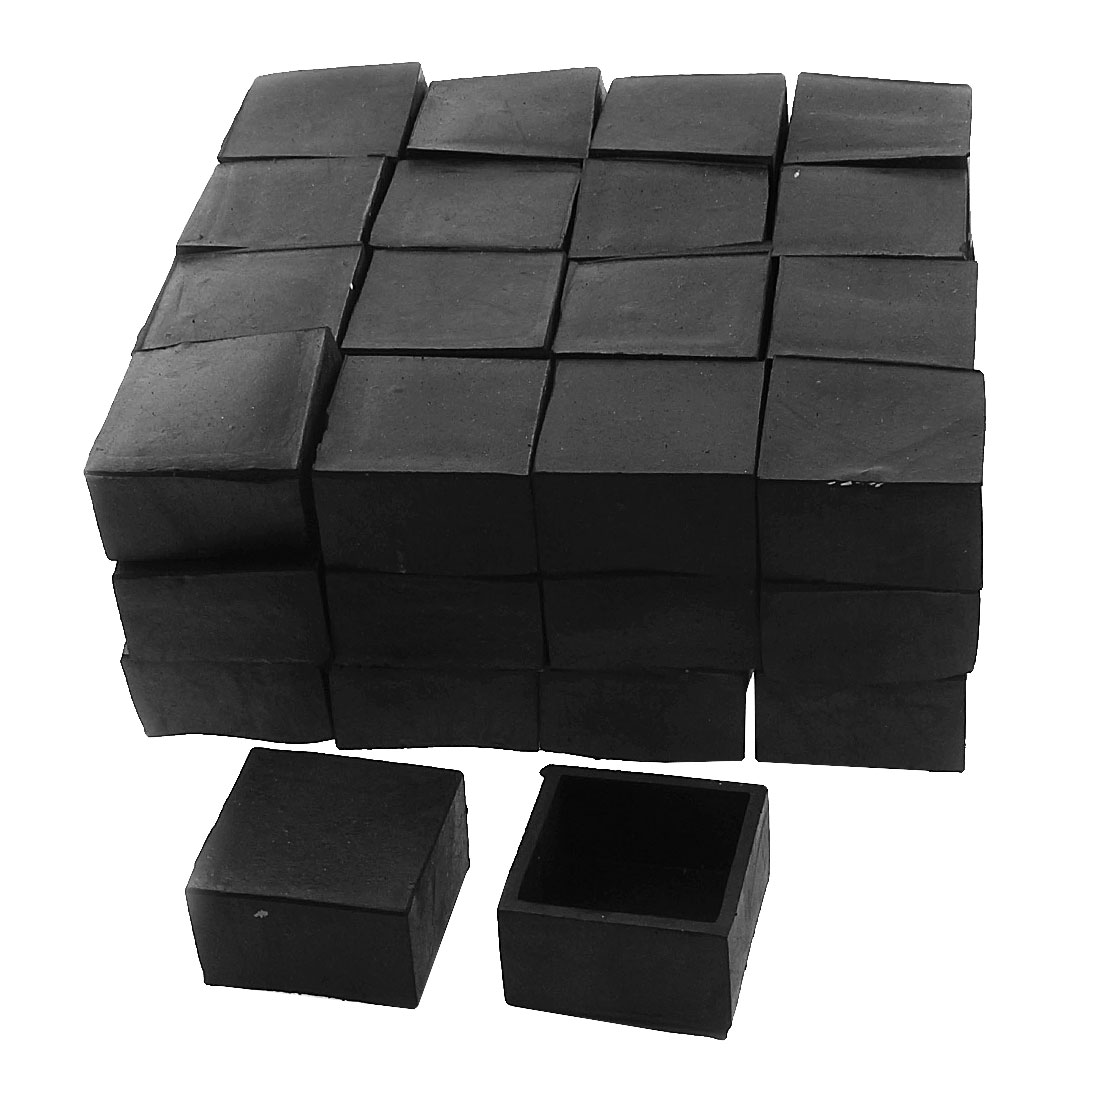 40mm x 40mm Square Shaped Furniture Table Desk Foot Leg Rubber End Cap Cover Black 50pcs